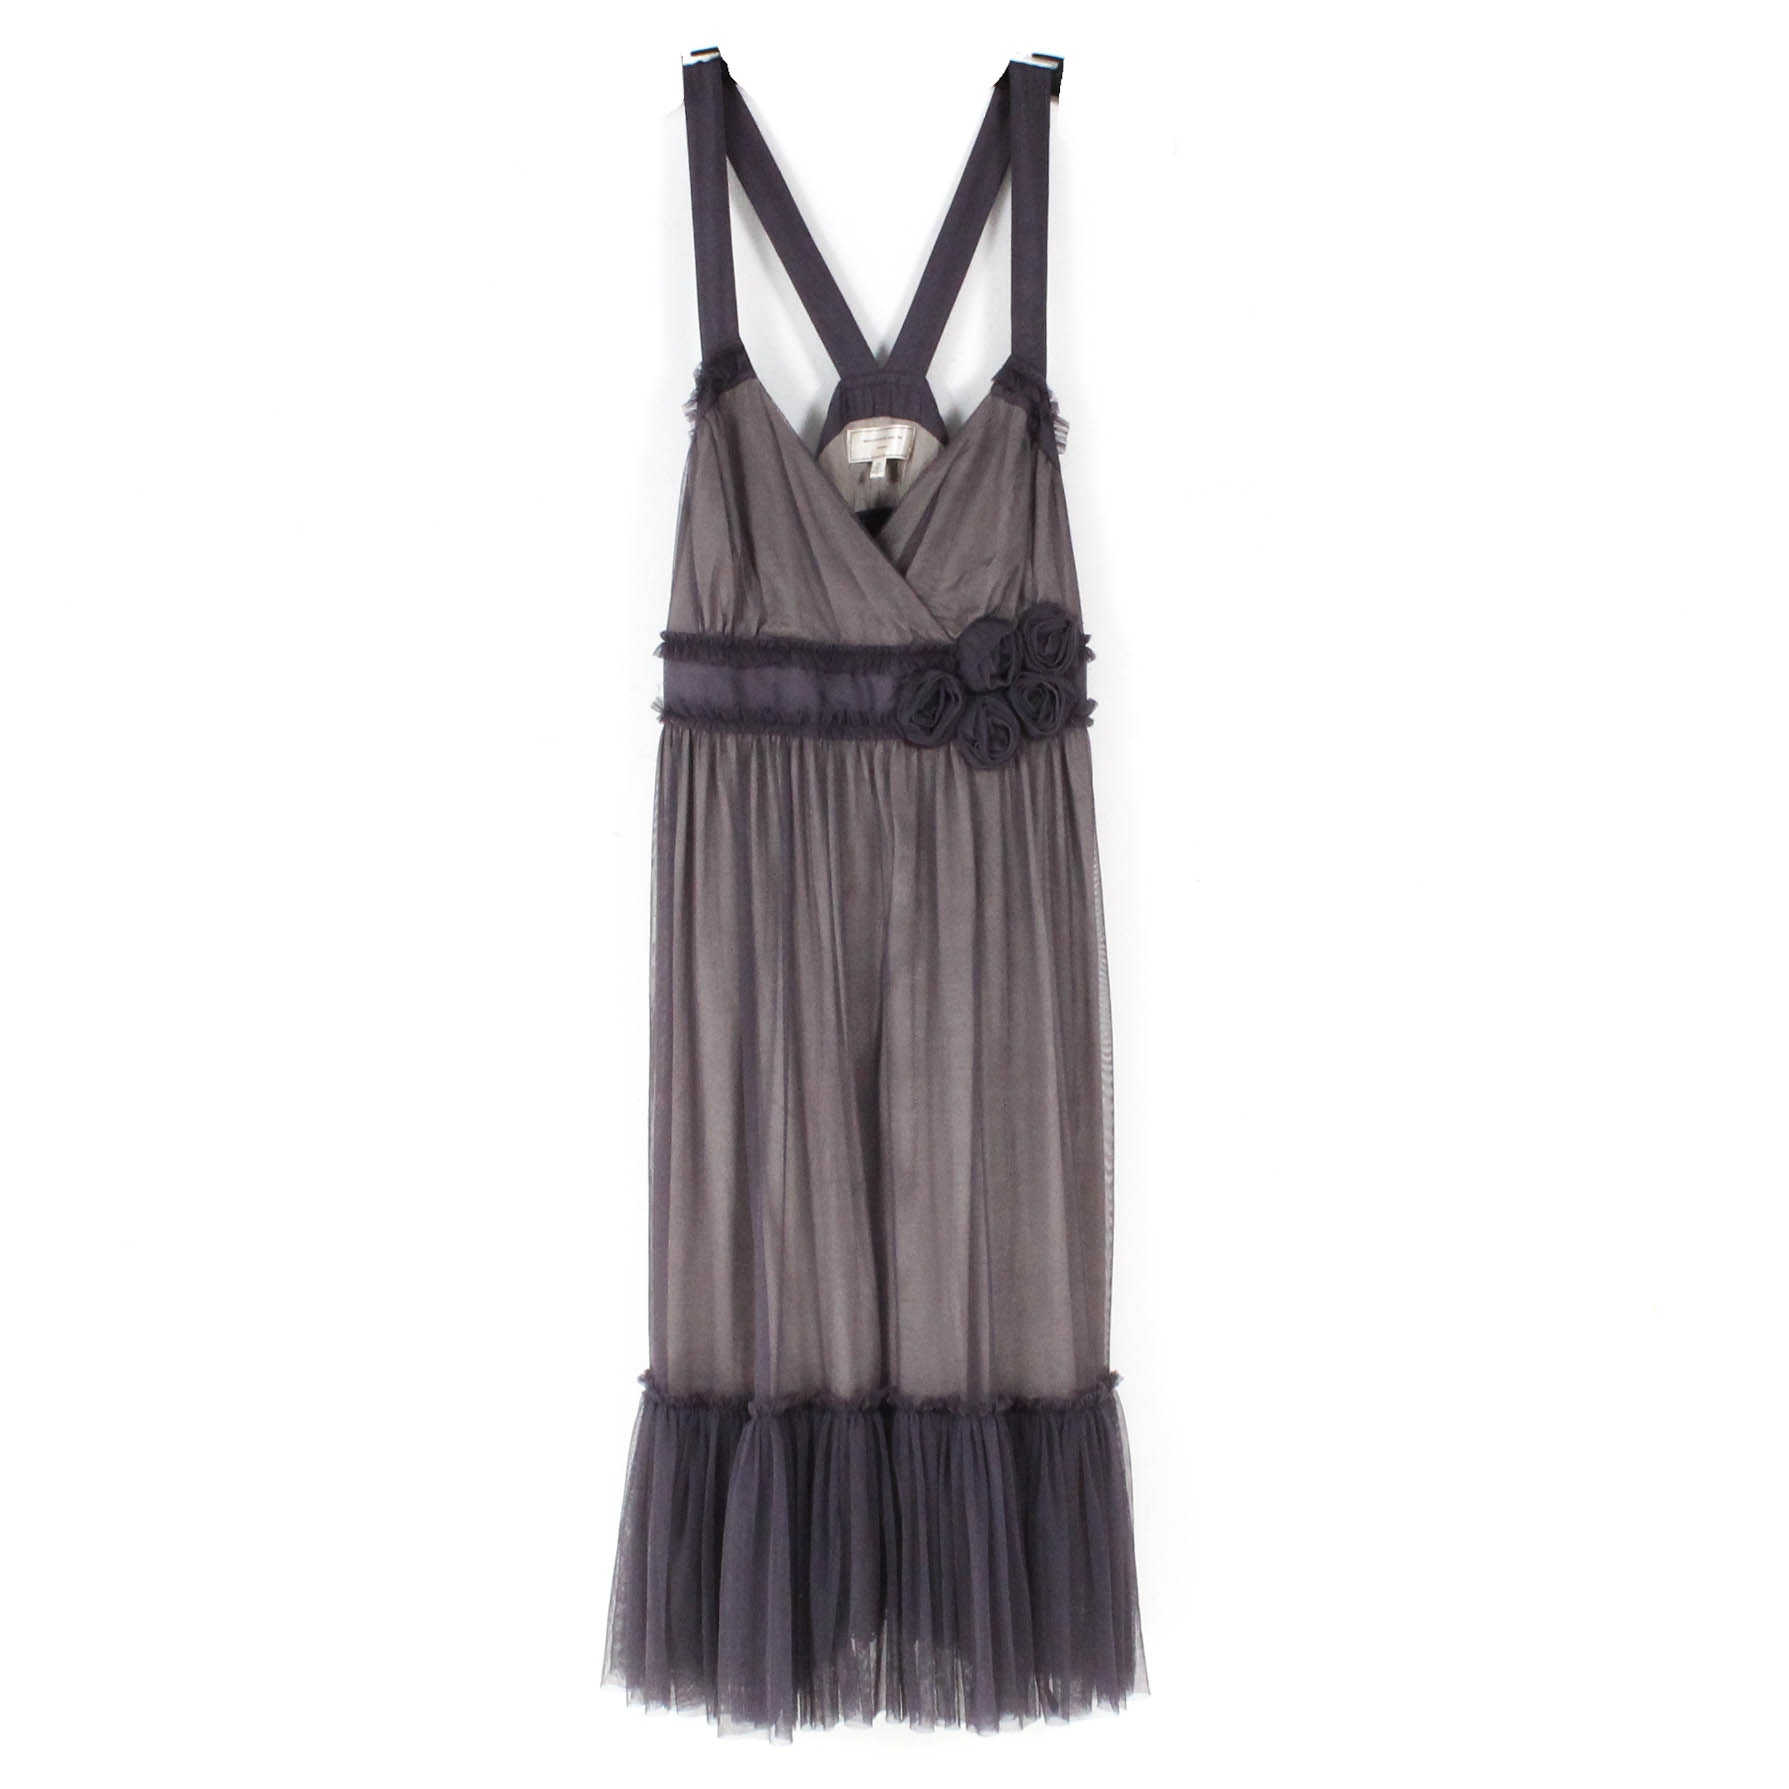 Moulinette Soeurs For Anthropologie Silk and Tulle Sleeveless Dress